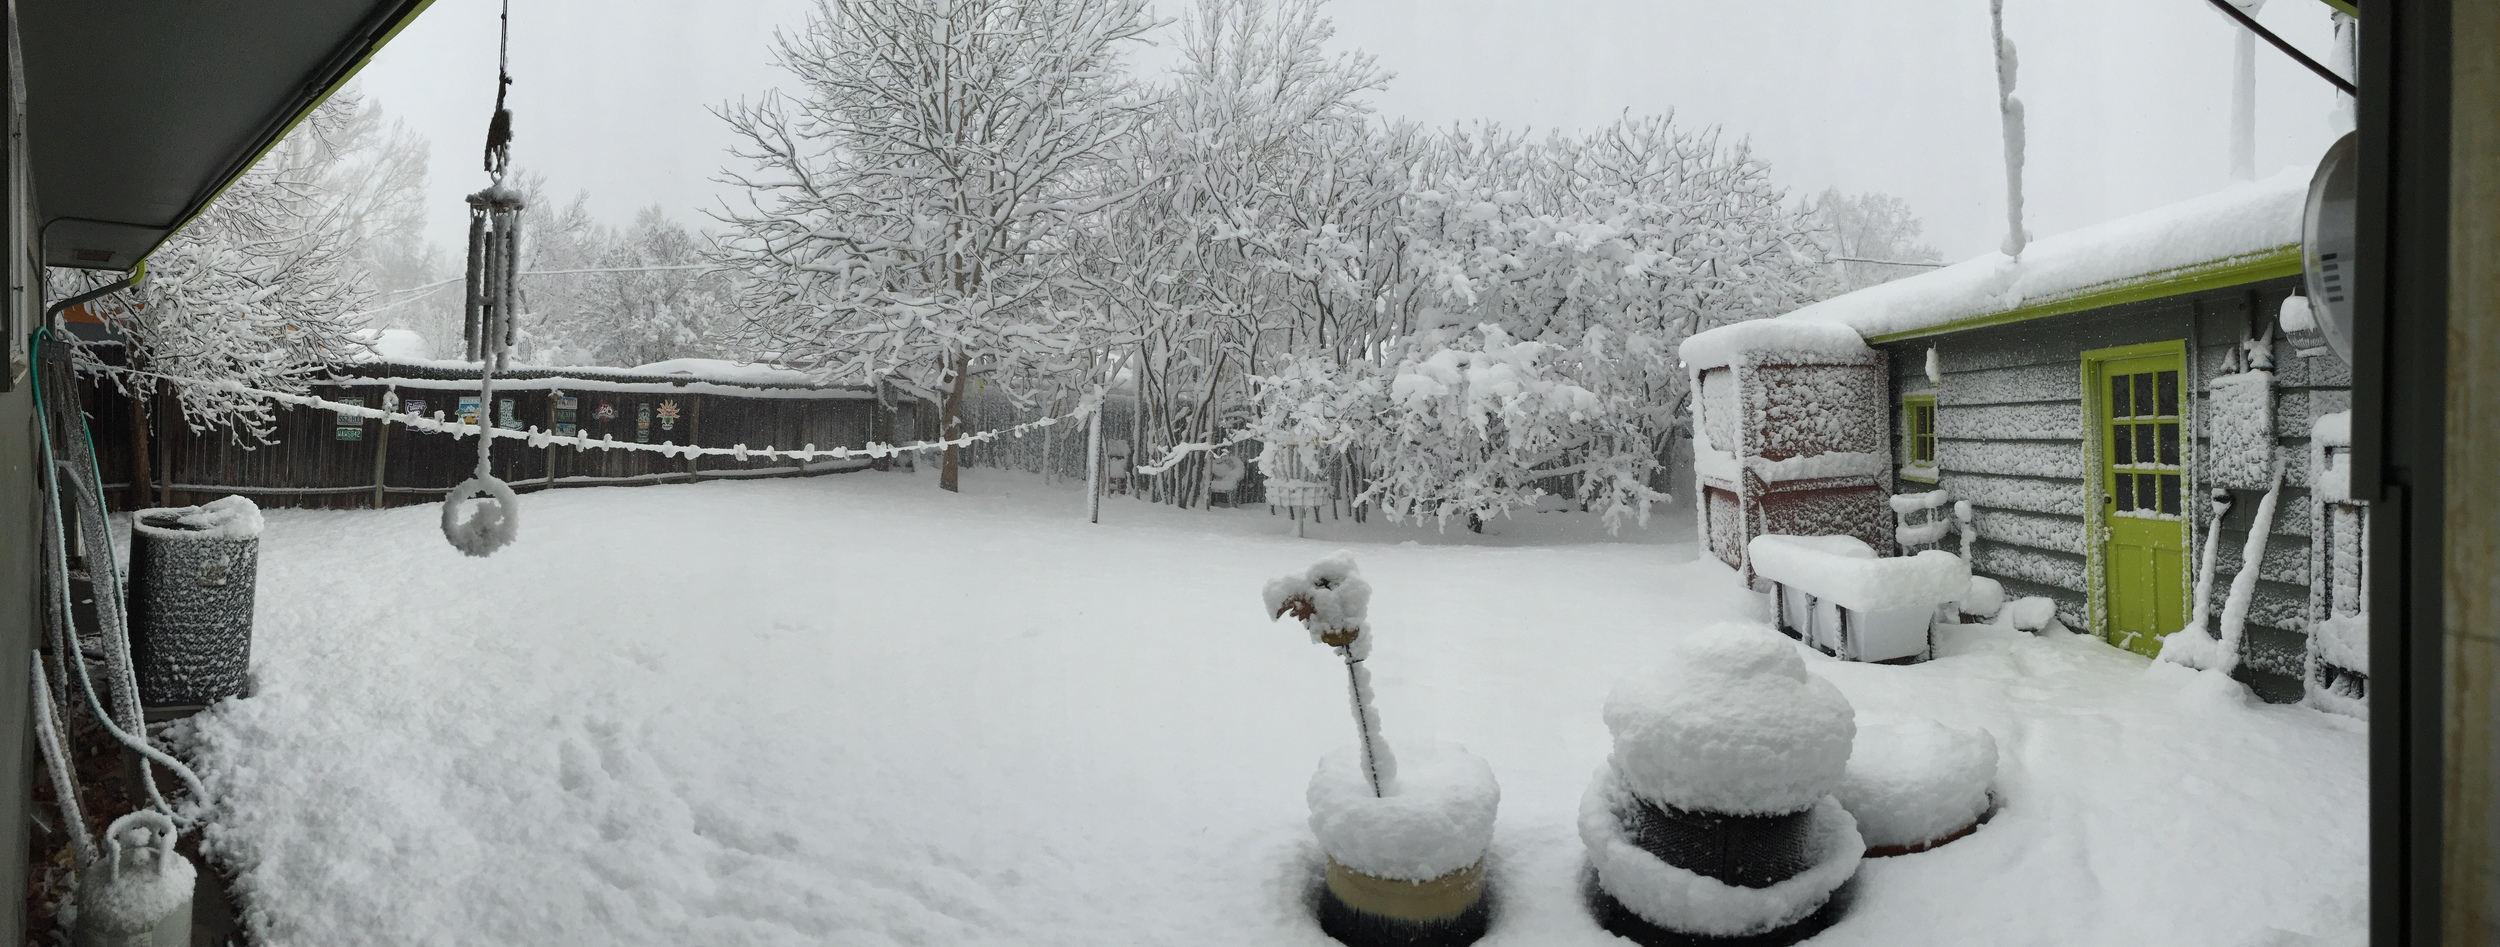 a panoramic portrait of the spring 2016 blizzard in Fort Collins, Colorado